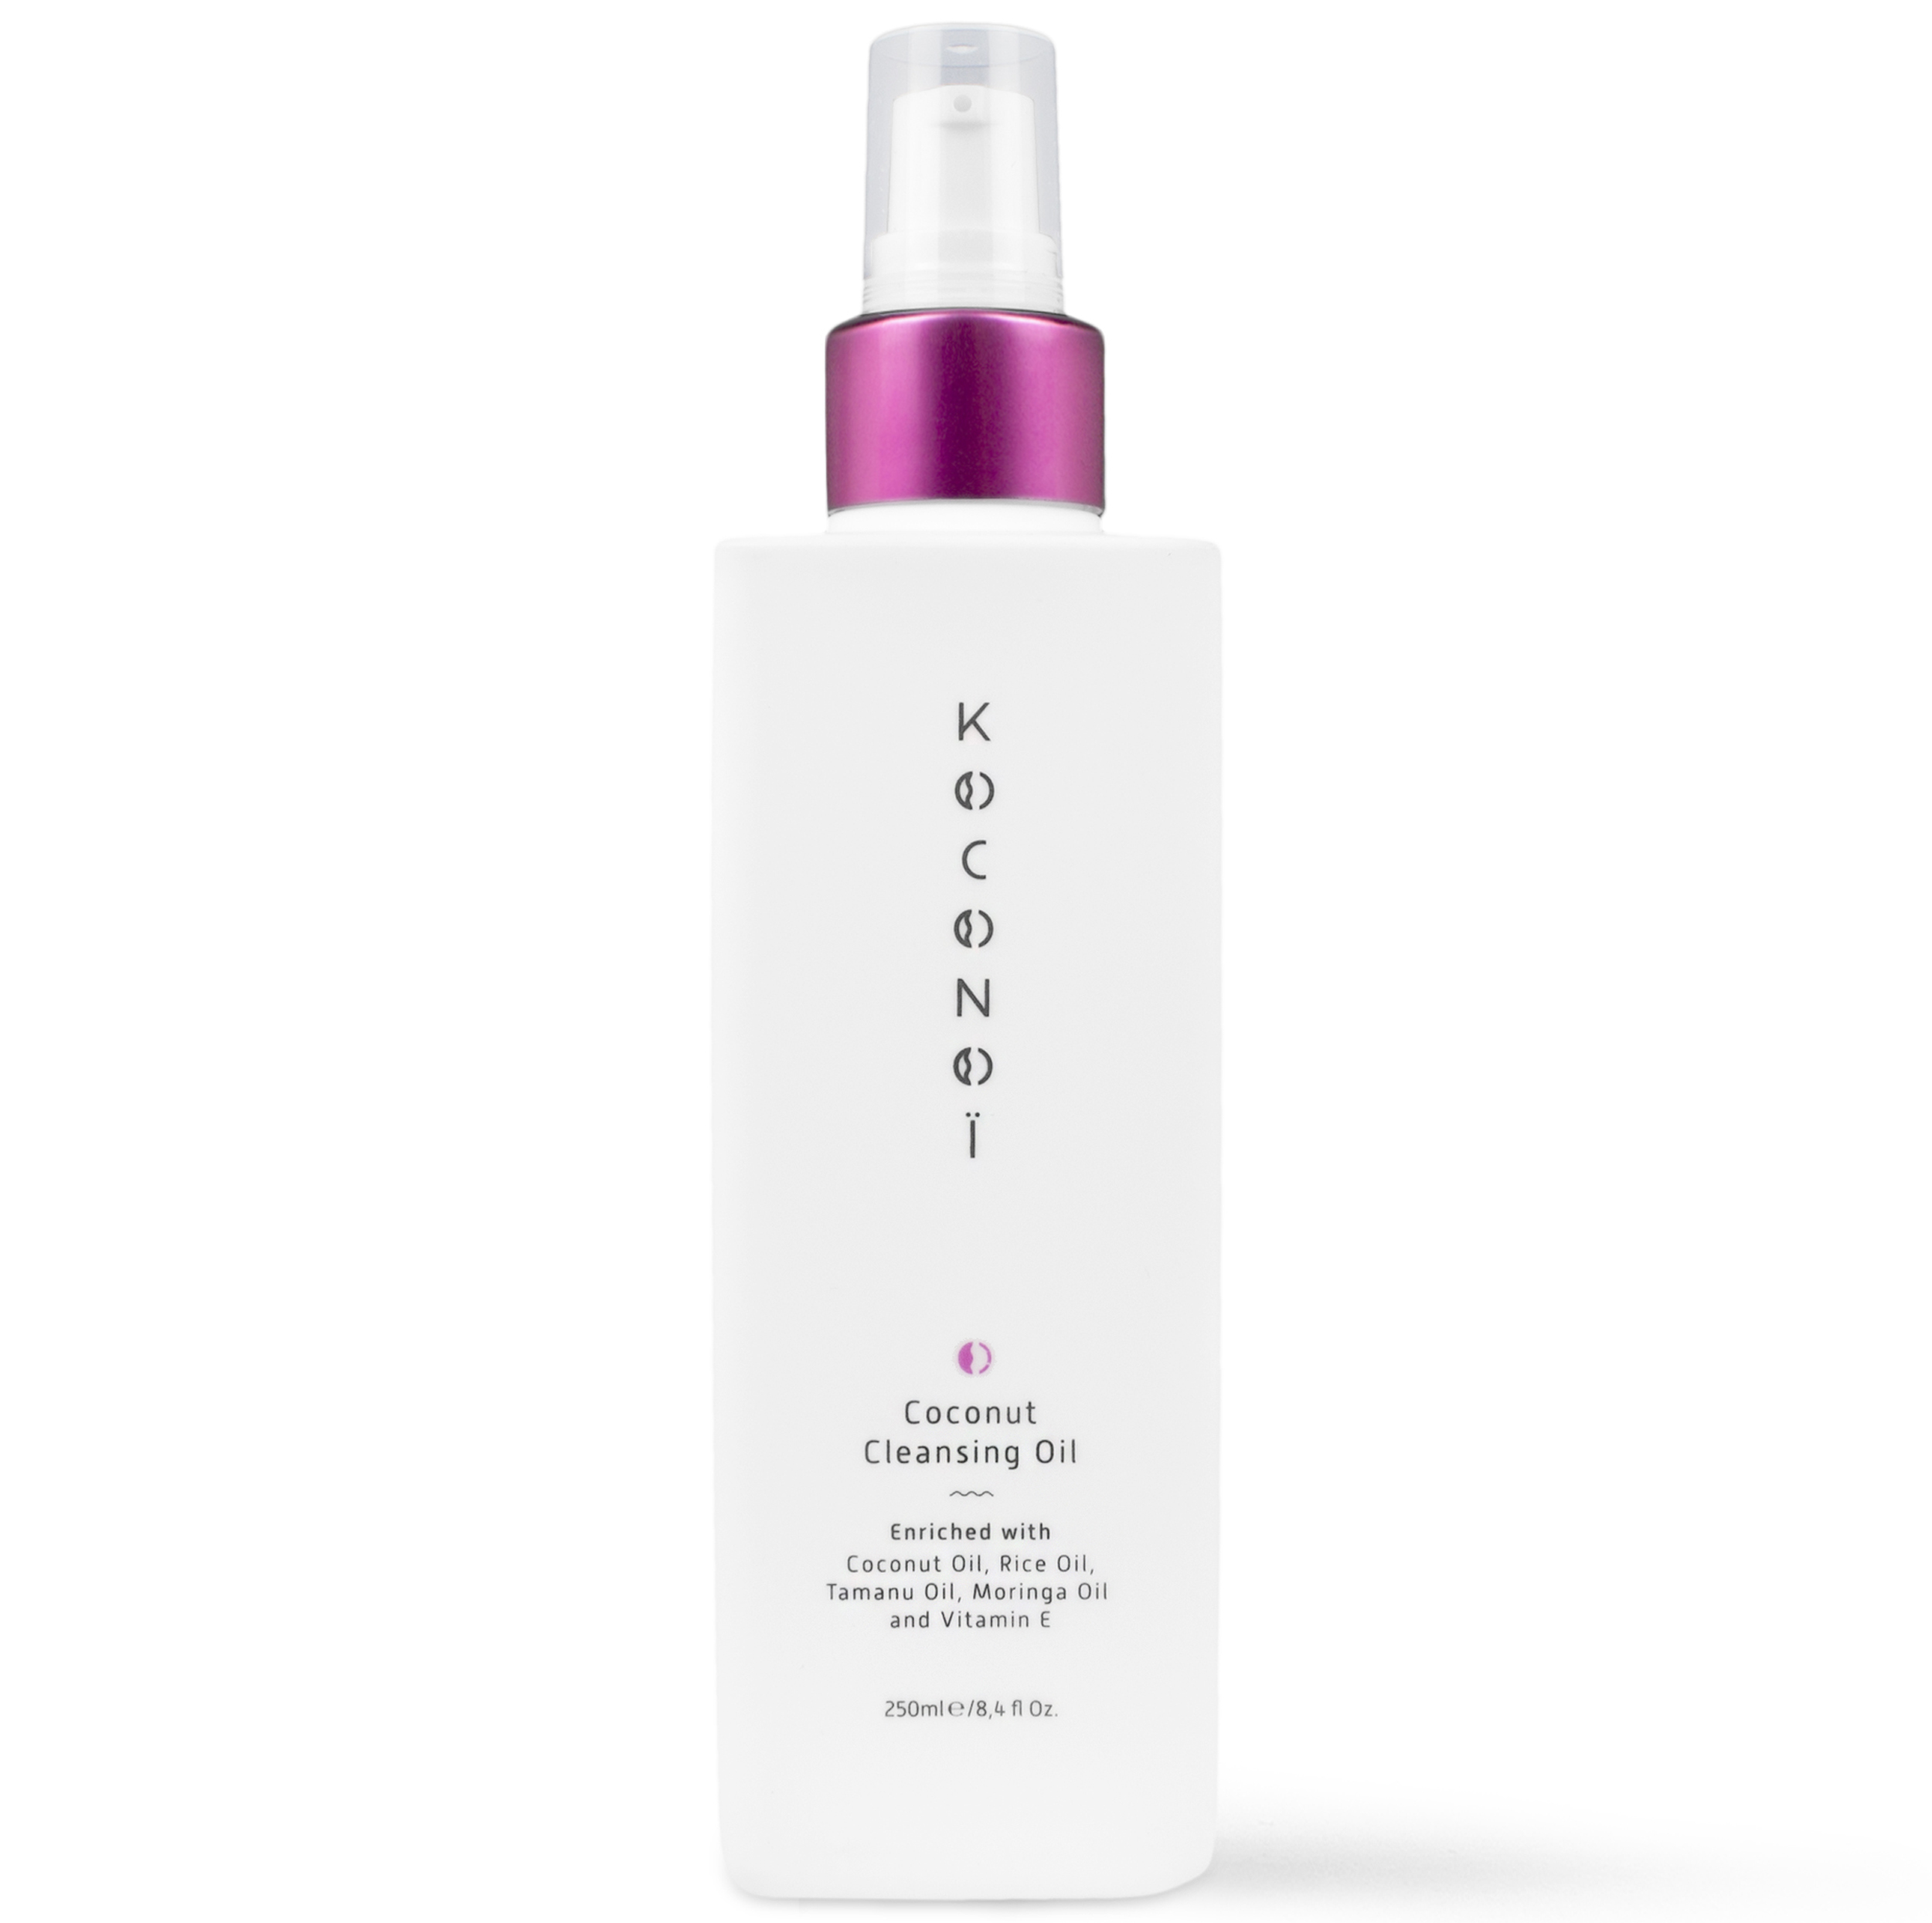 Koconoi Coconut Cleansing Oil, £16, Skinspace